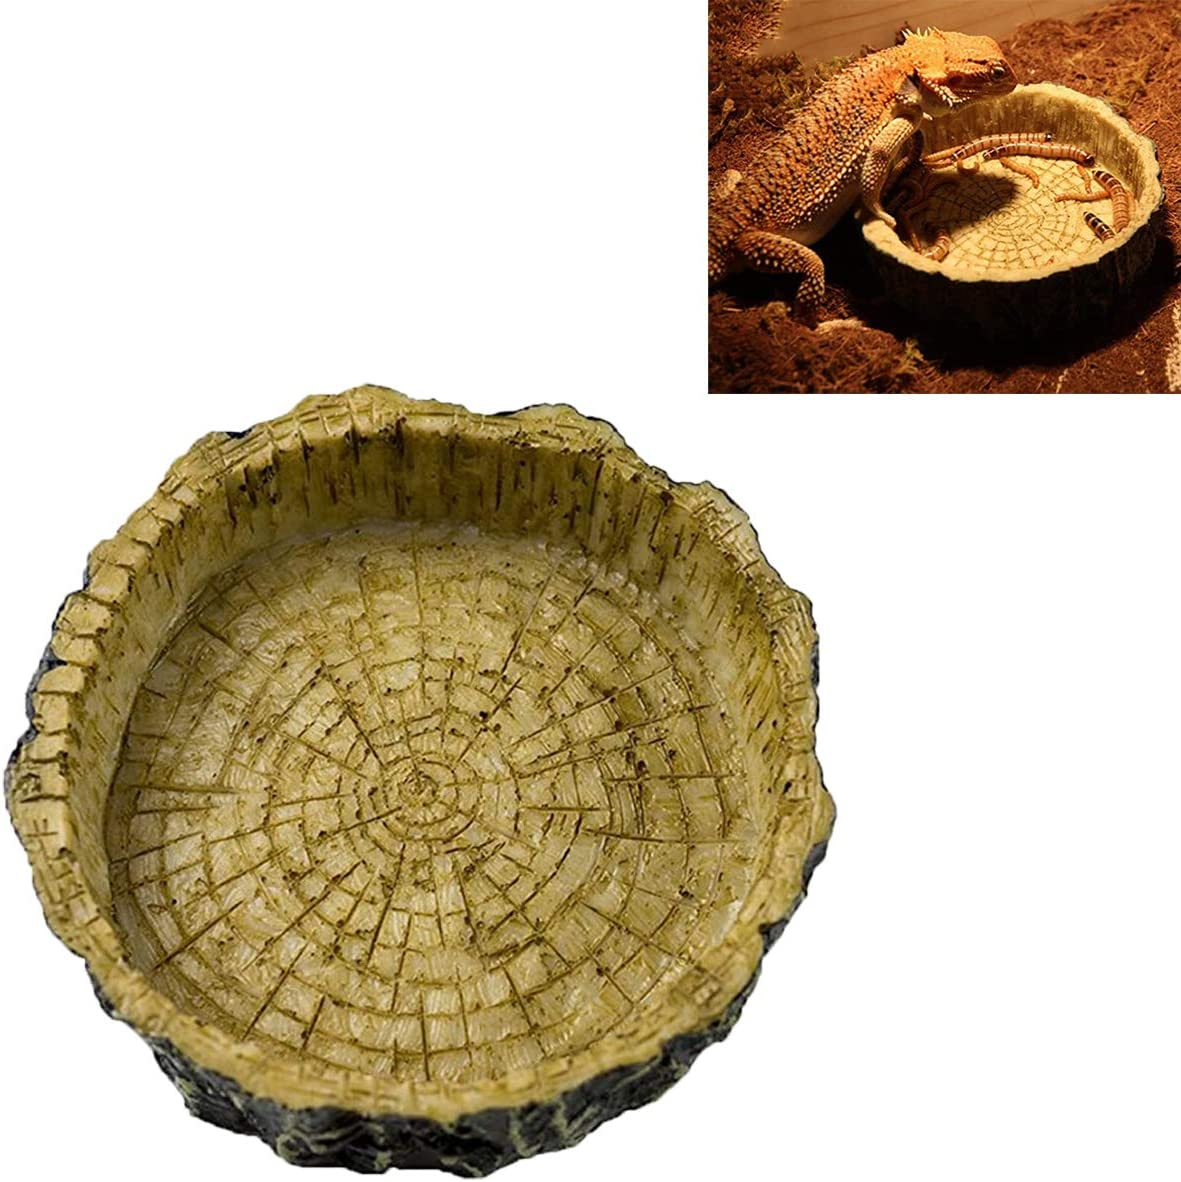 Ailindany Reptile Bowl Tortoise Water Dish Food Bowl Feeders Water Dish Resin Made for Amphibians Gecko Snakes Lizard Chameleon